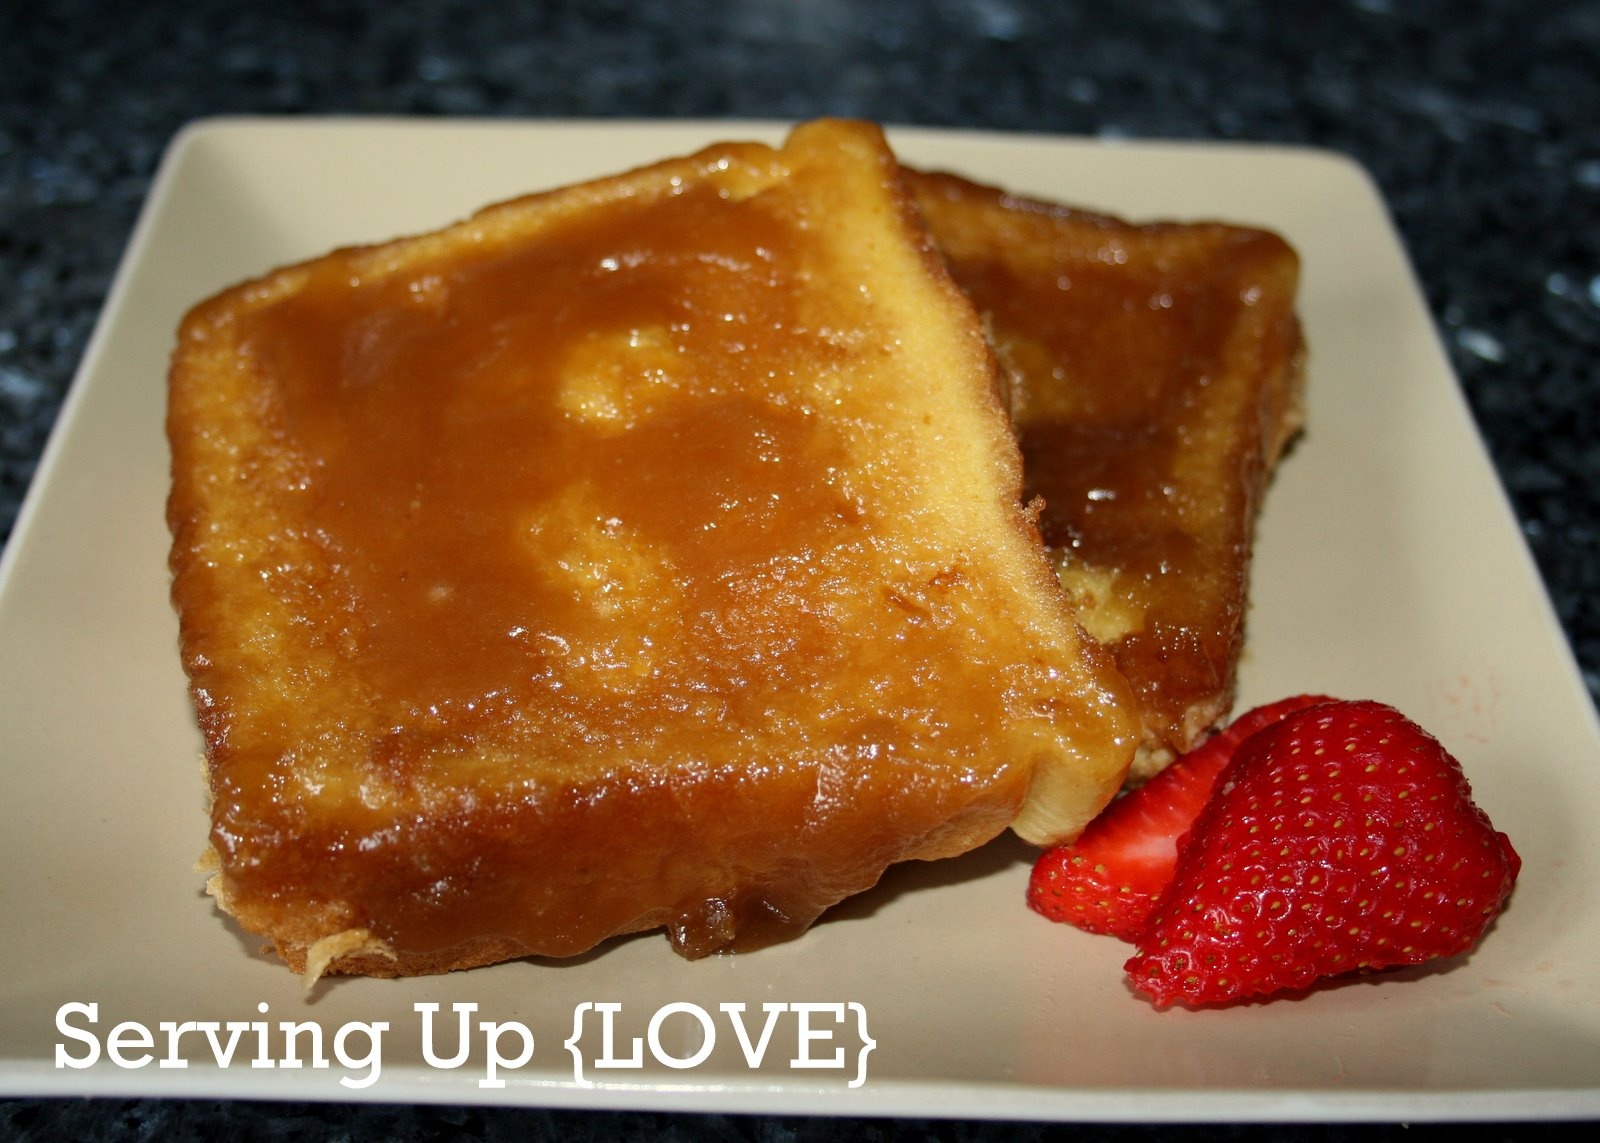 Katherine's Kitchen: Serving Up {Breakfast}: Creme Brulee French Toast